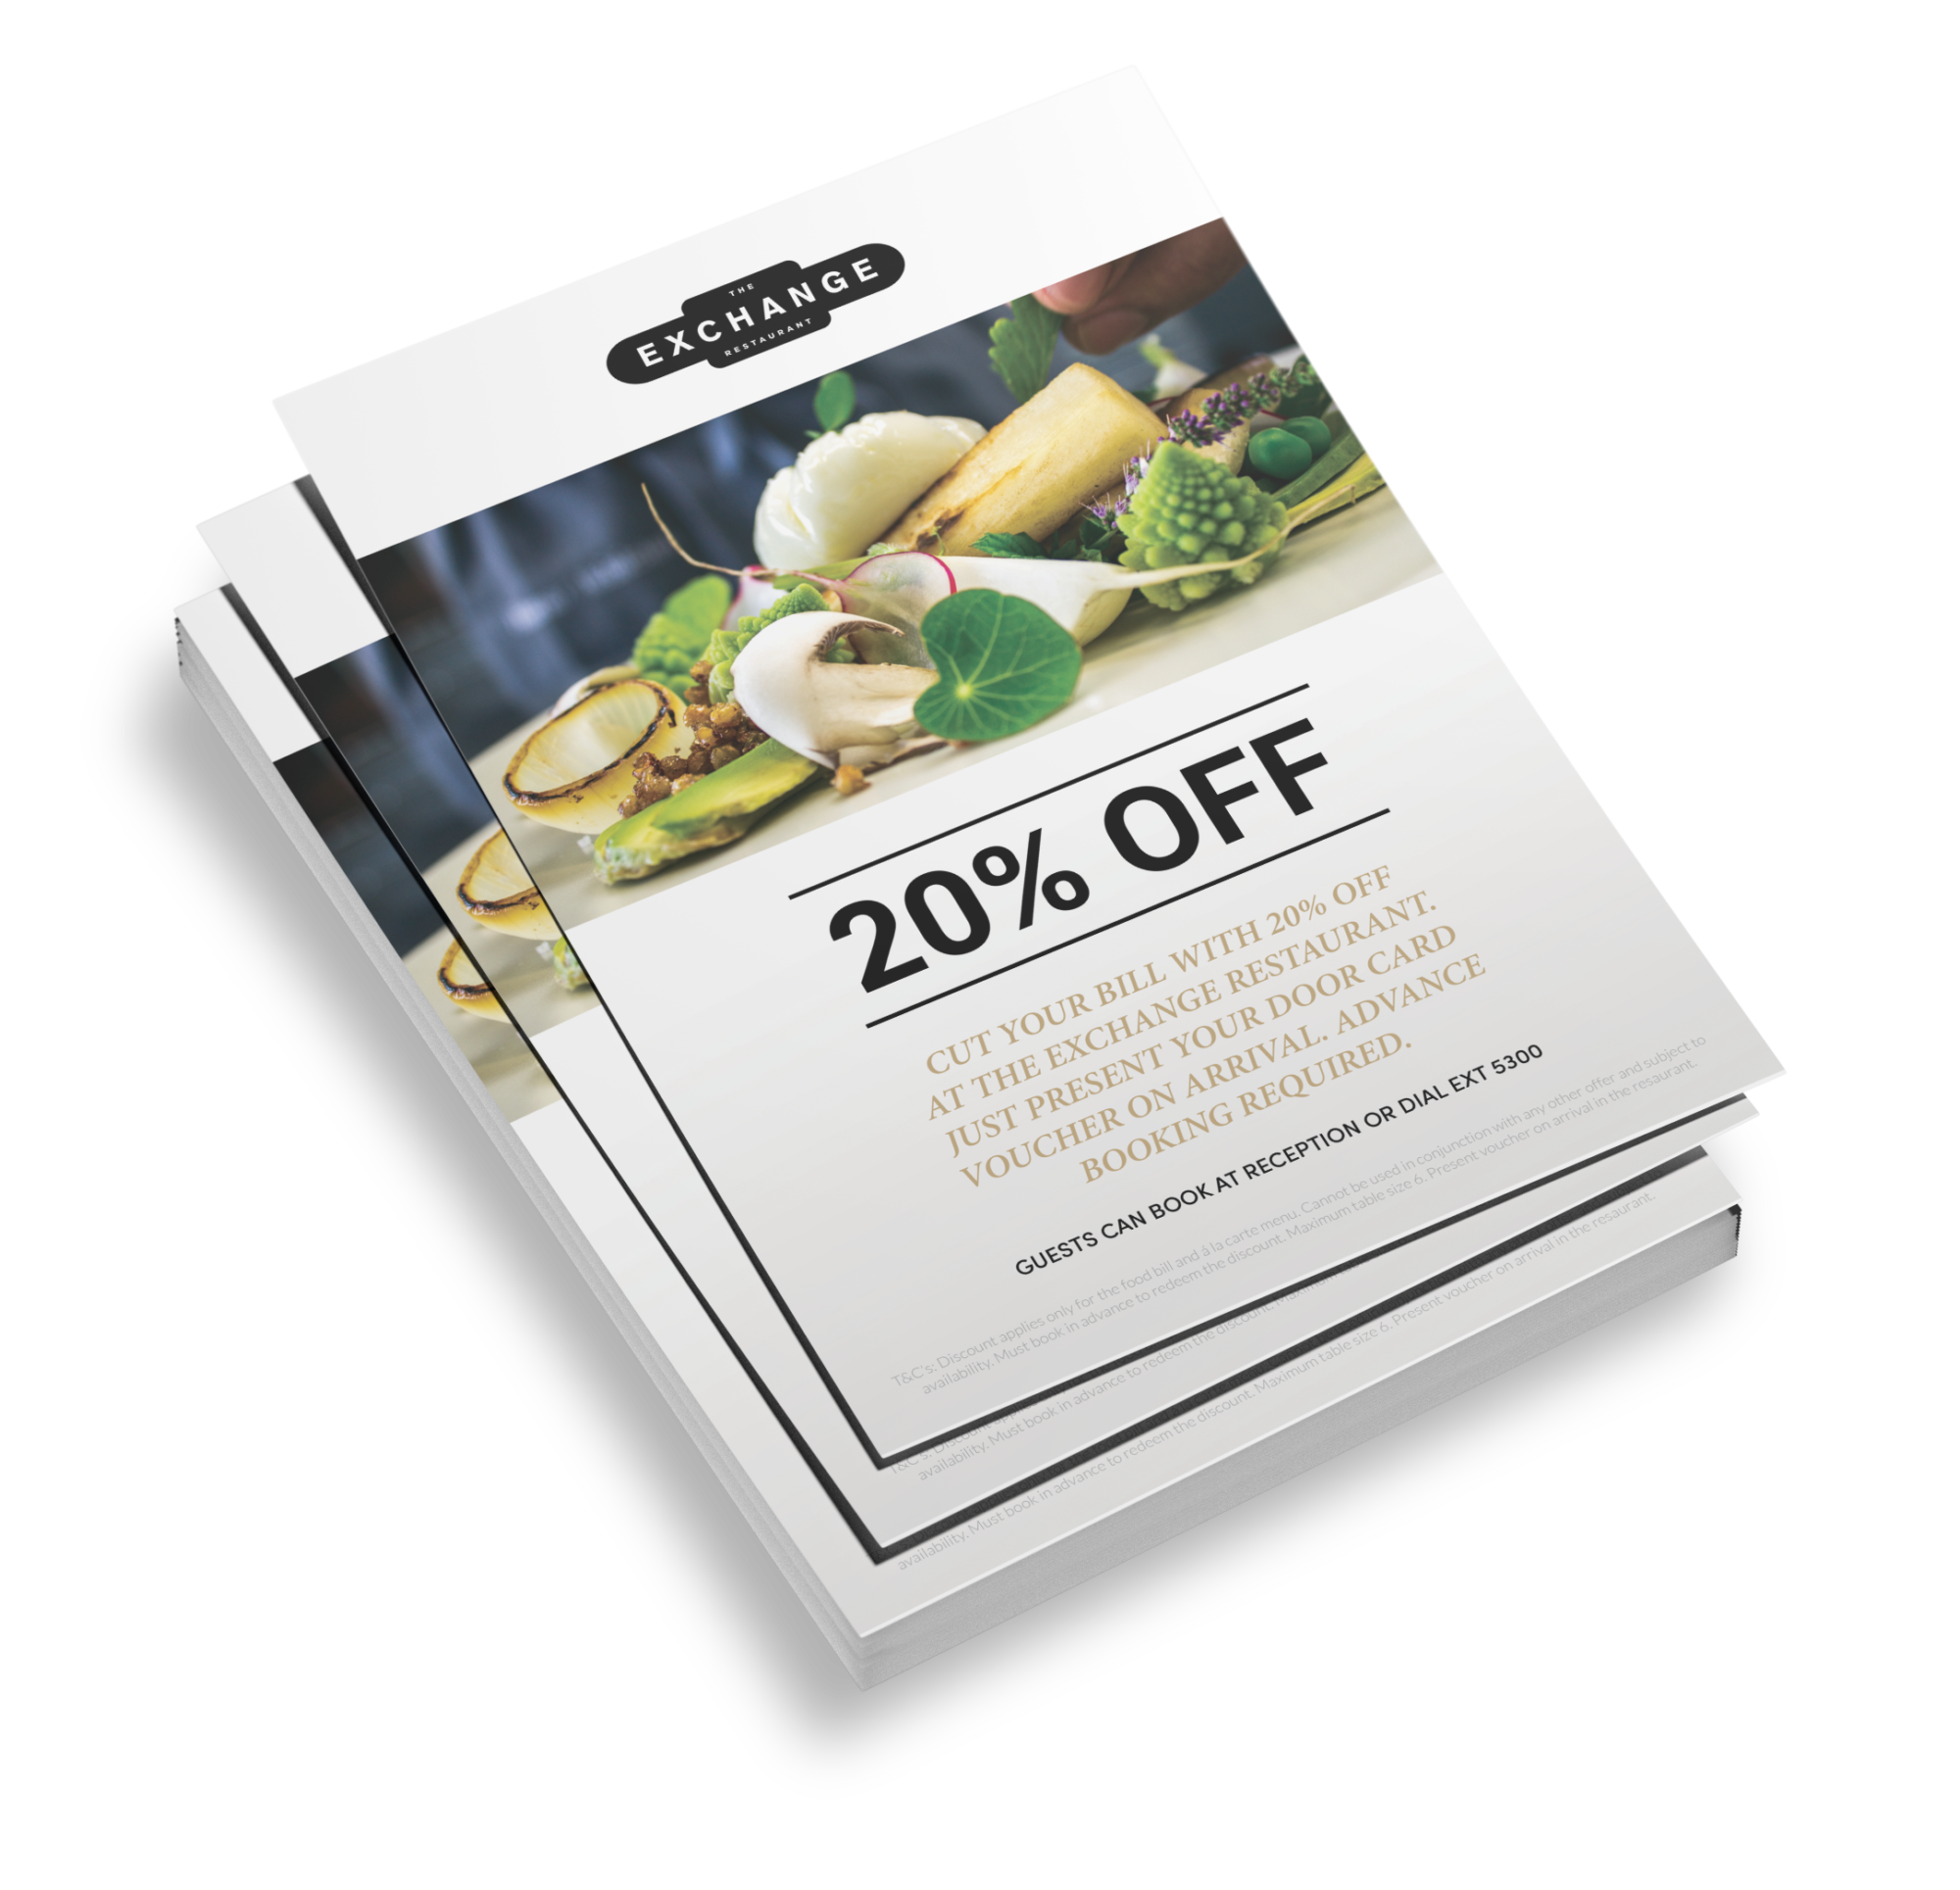 A flyer of the Hilton showcasing a 20% off incentive.